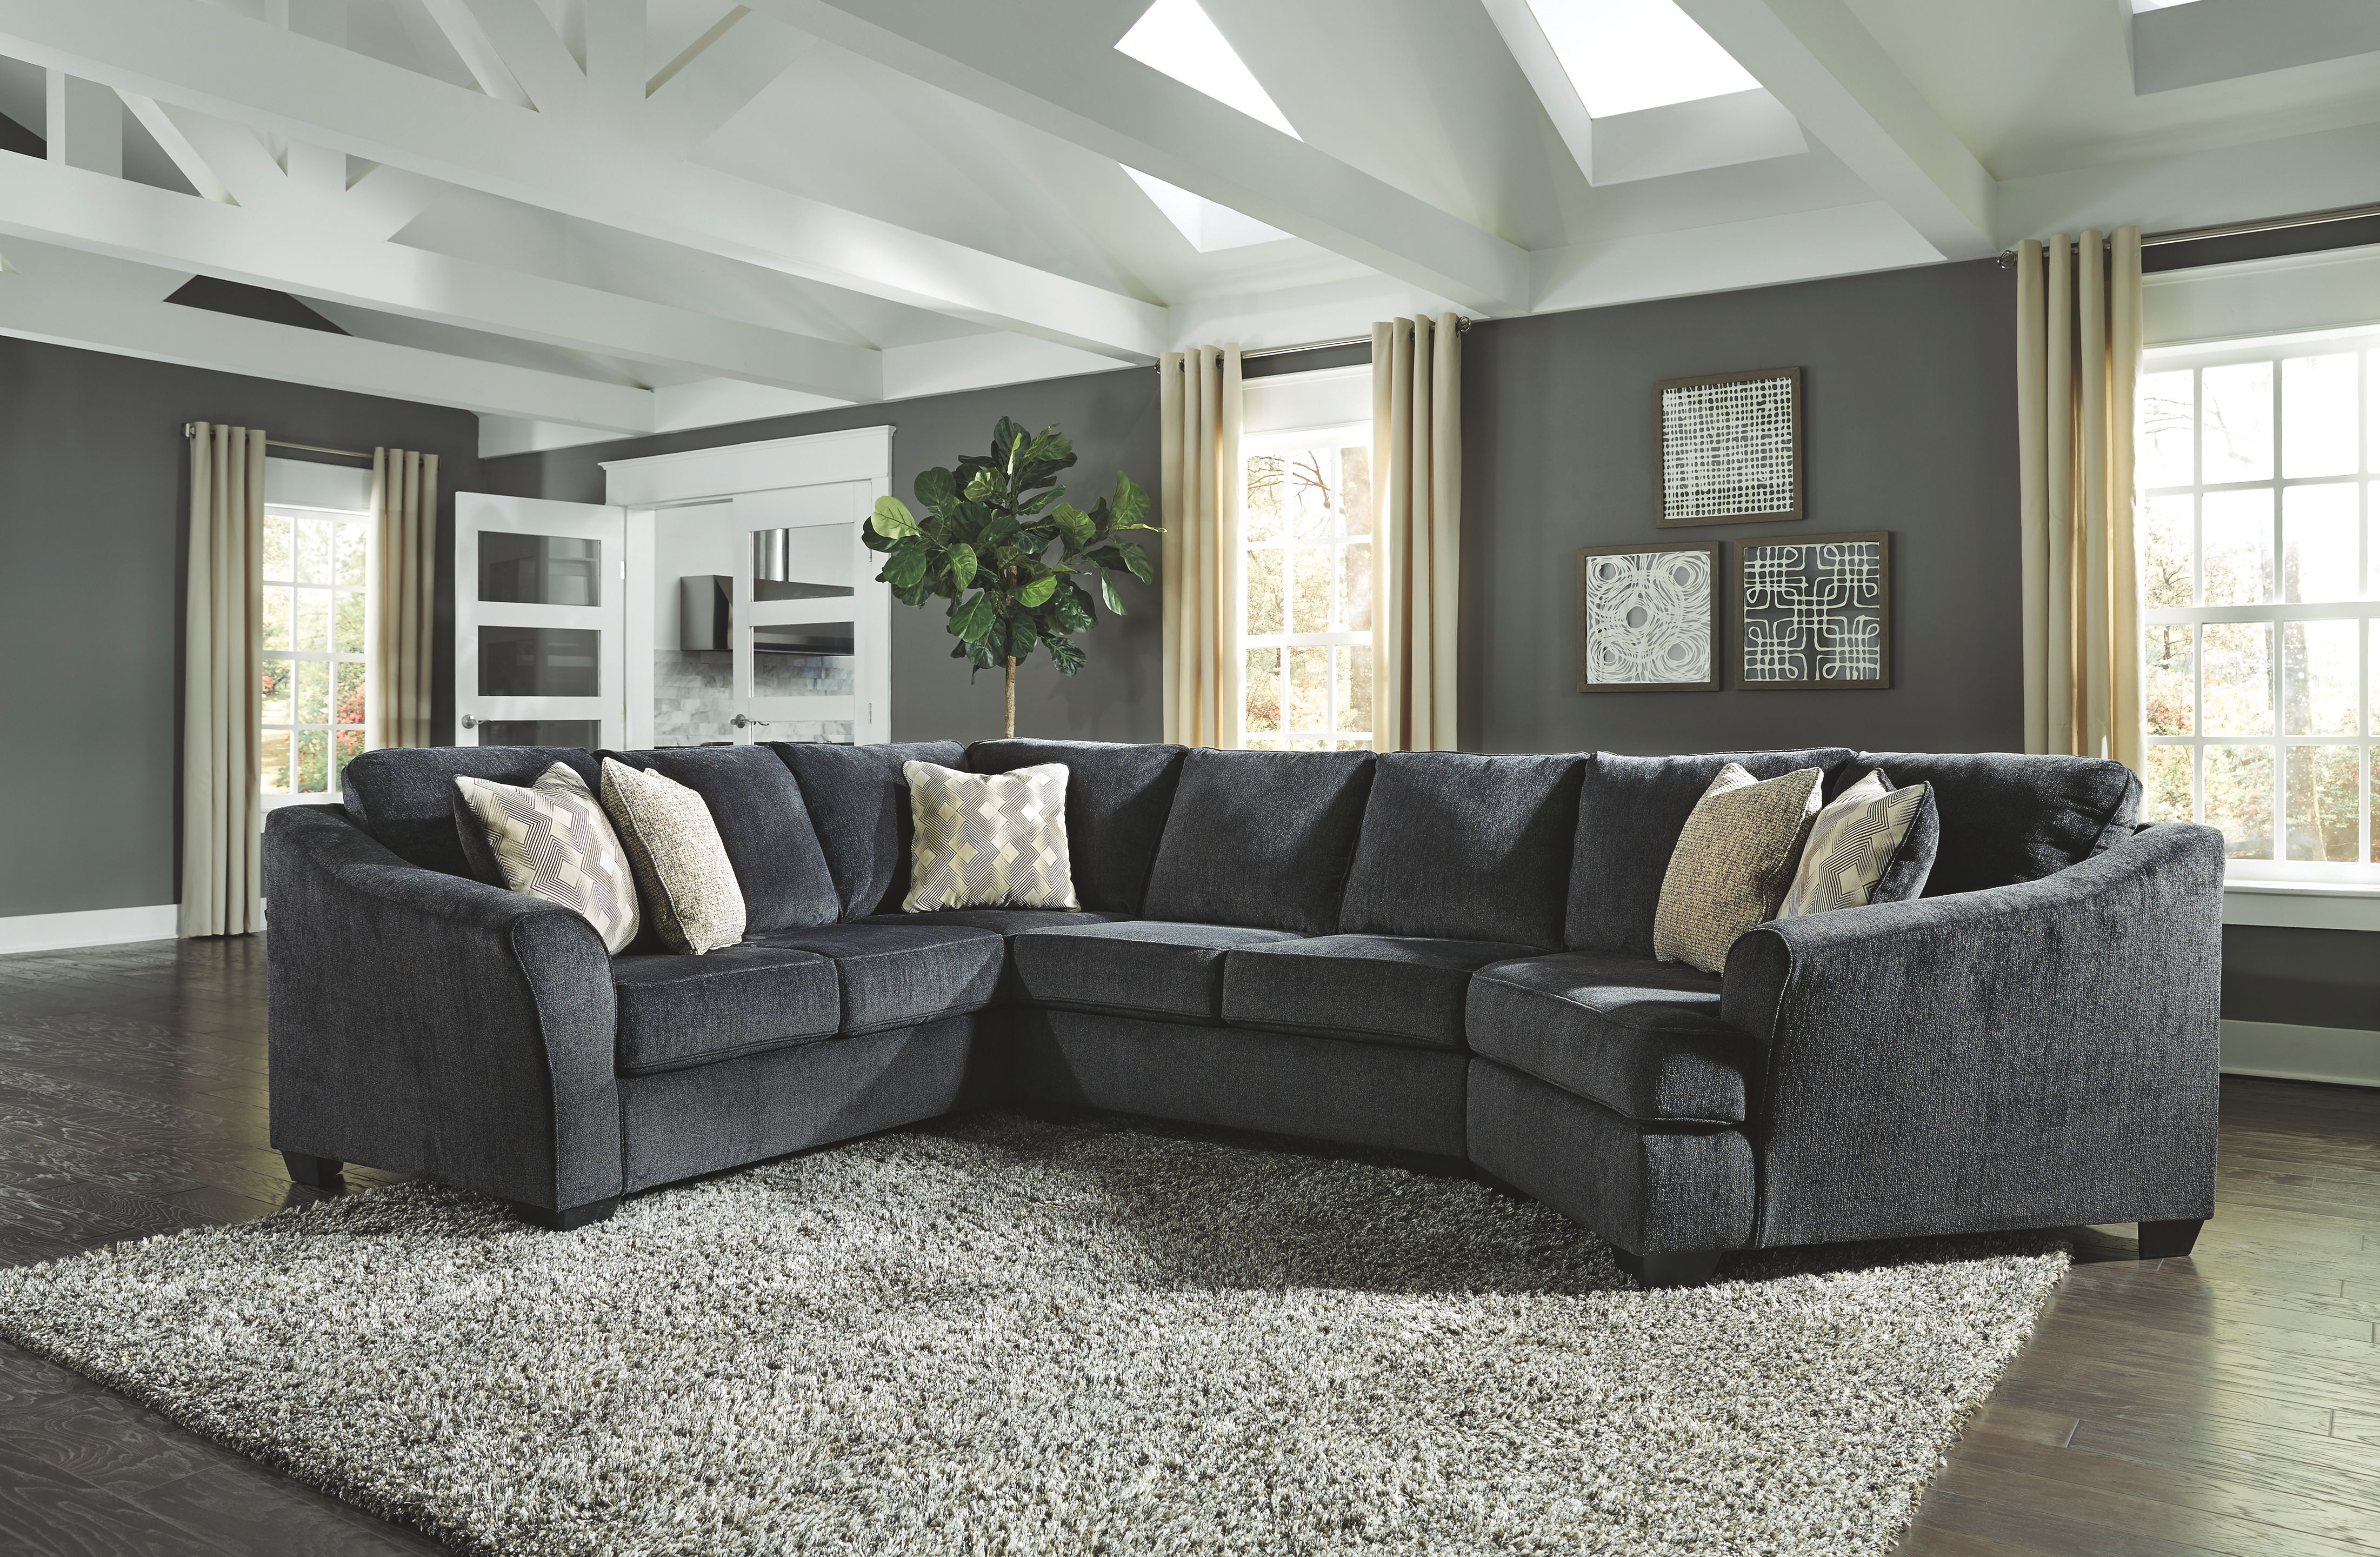 Best Eltmann 3 Piece Sectional With Cuddler Slate In 2020 640 x 480